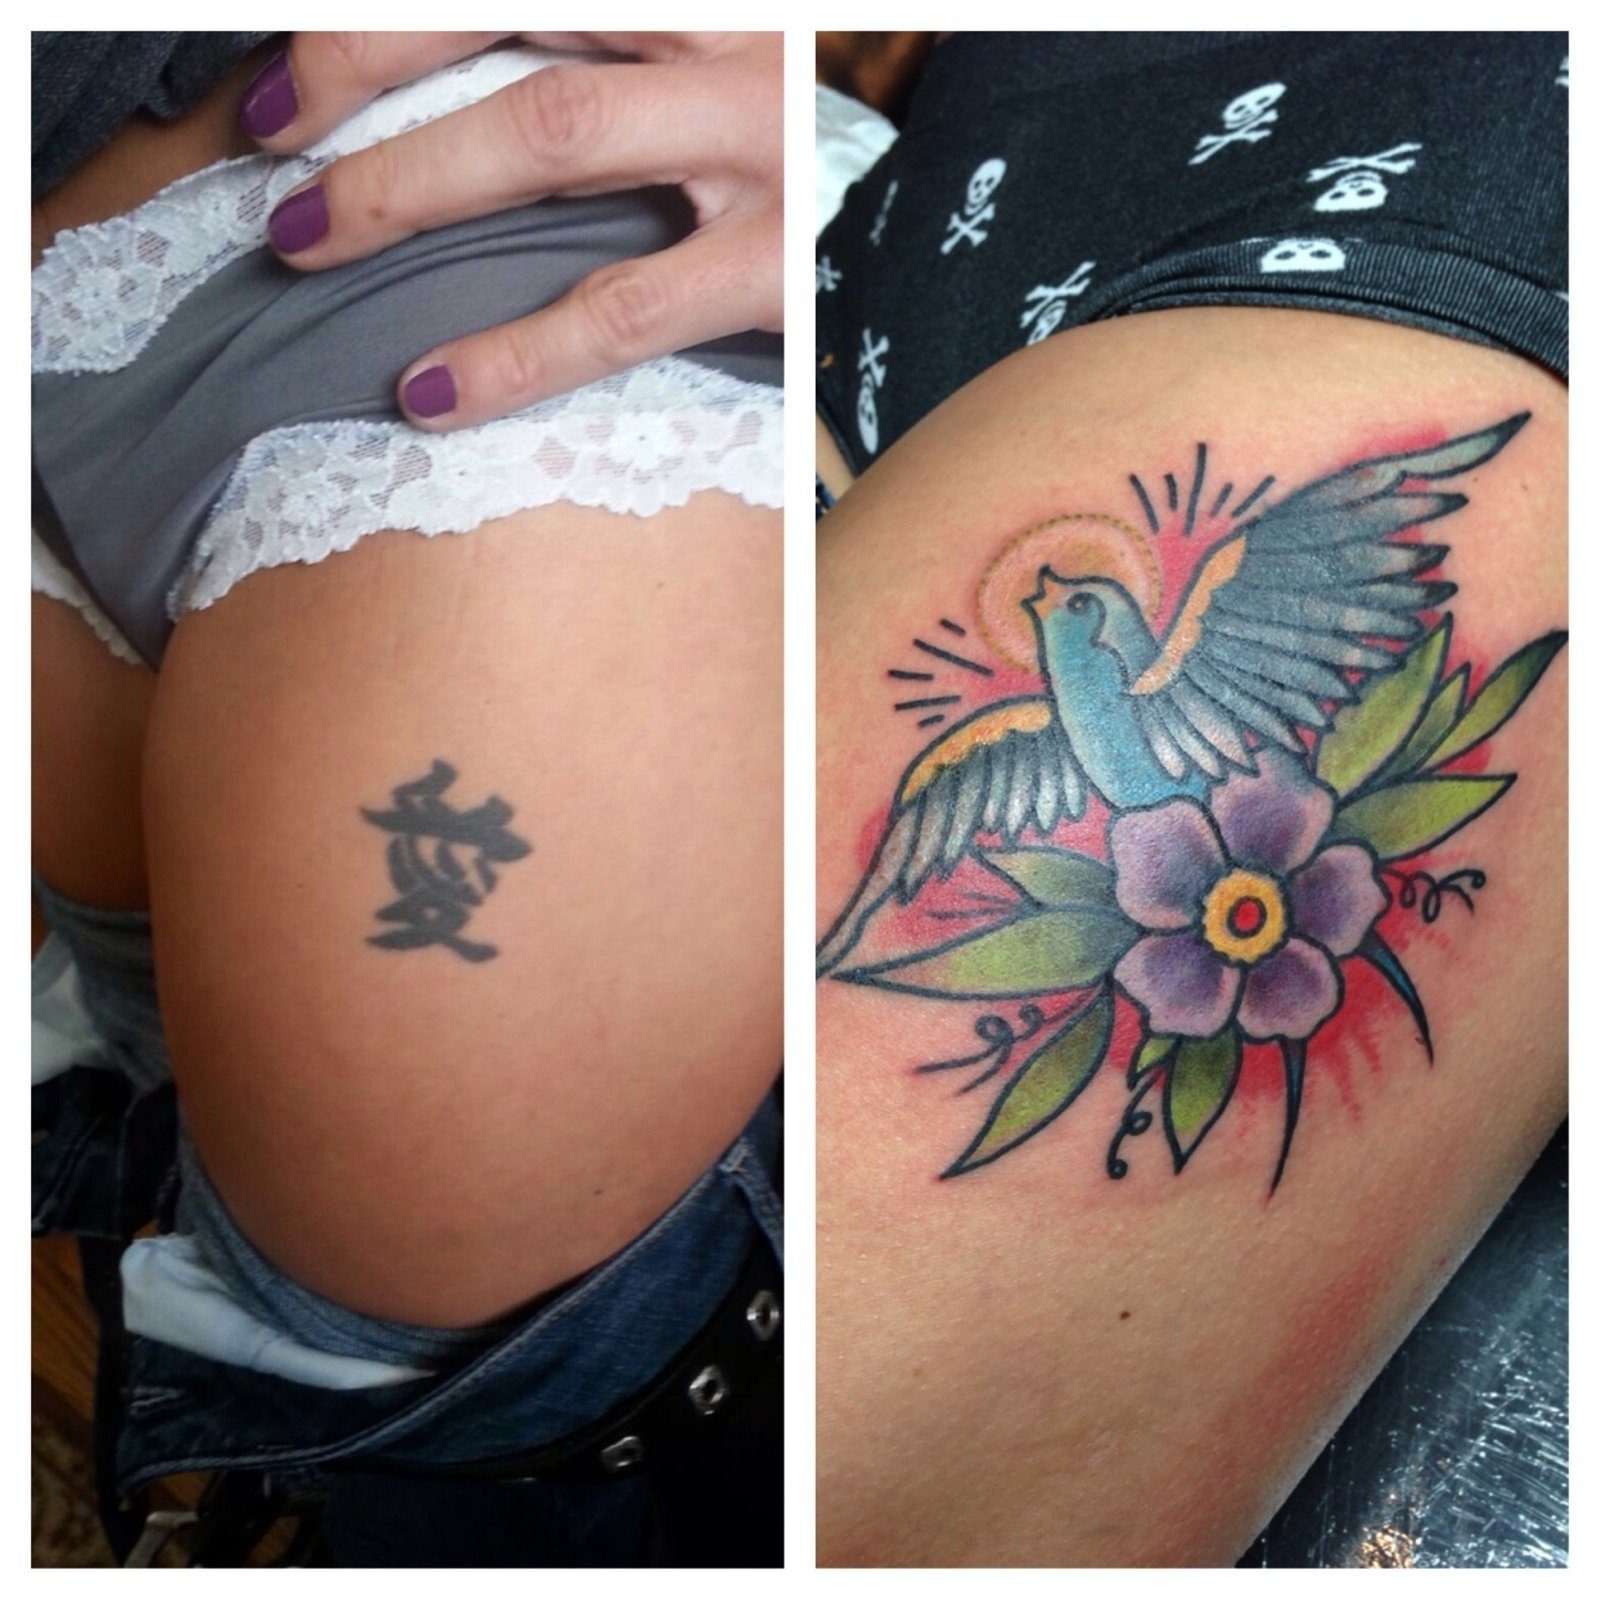 10 Stunning Name Tattoo Cover Up Ideas cover up tattoos royal flesh tattoo and piercing chicago tattoo 7 2021